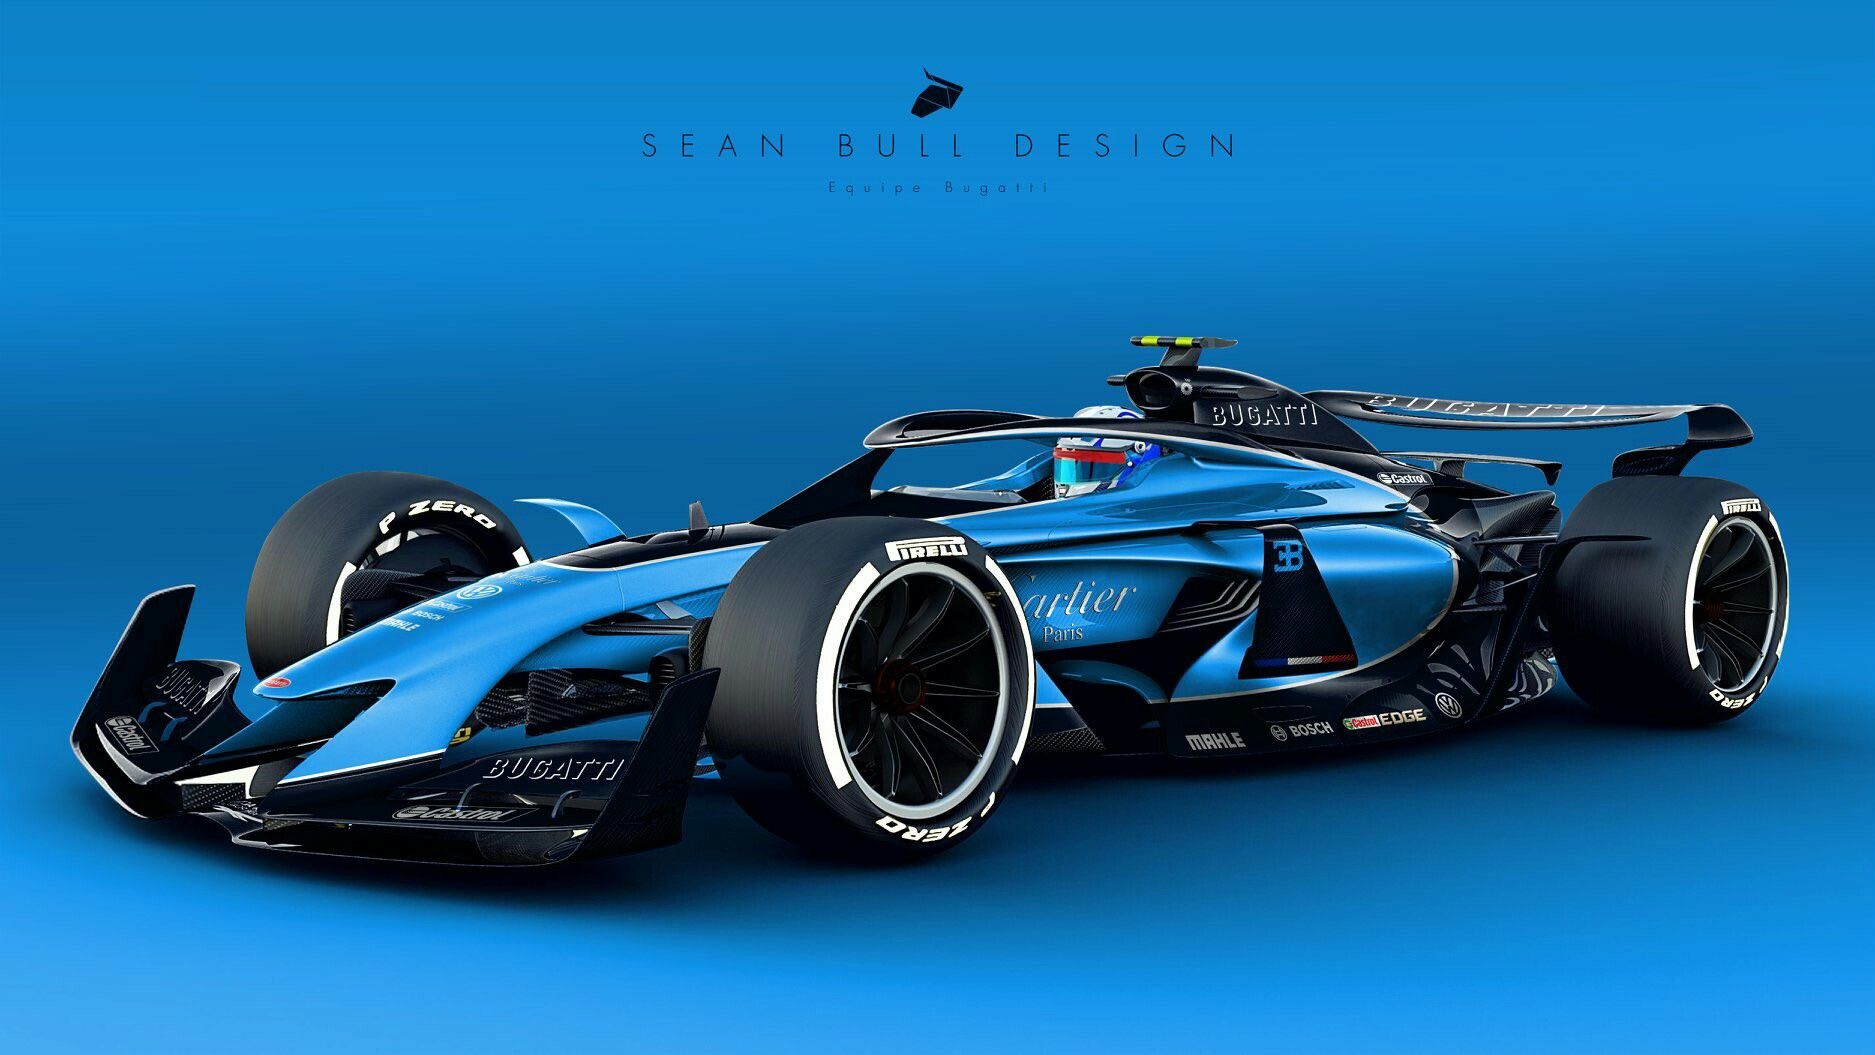 Bugatti Livery On The 2021 F1 Concept What Other Brands Do You Want To See Enter Under The New Regulations Indy Cars Super Cars Concept Cars